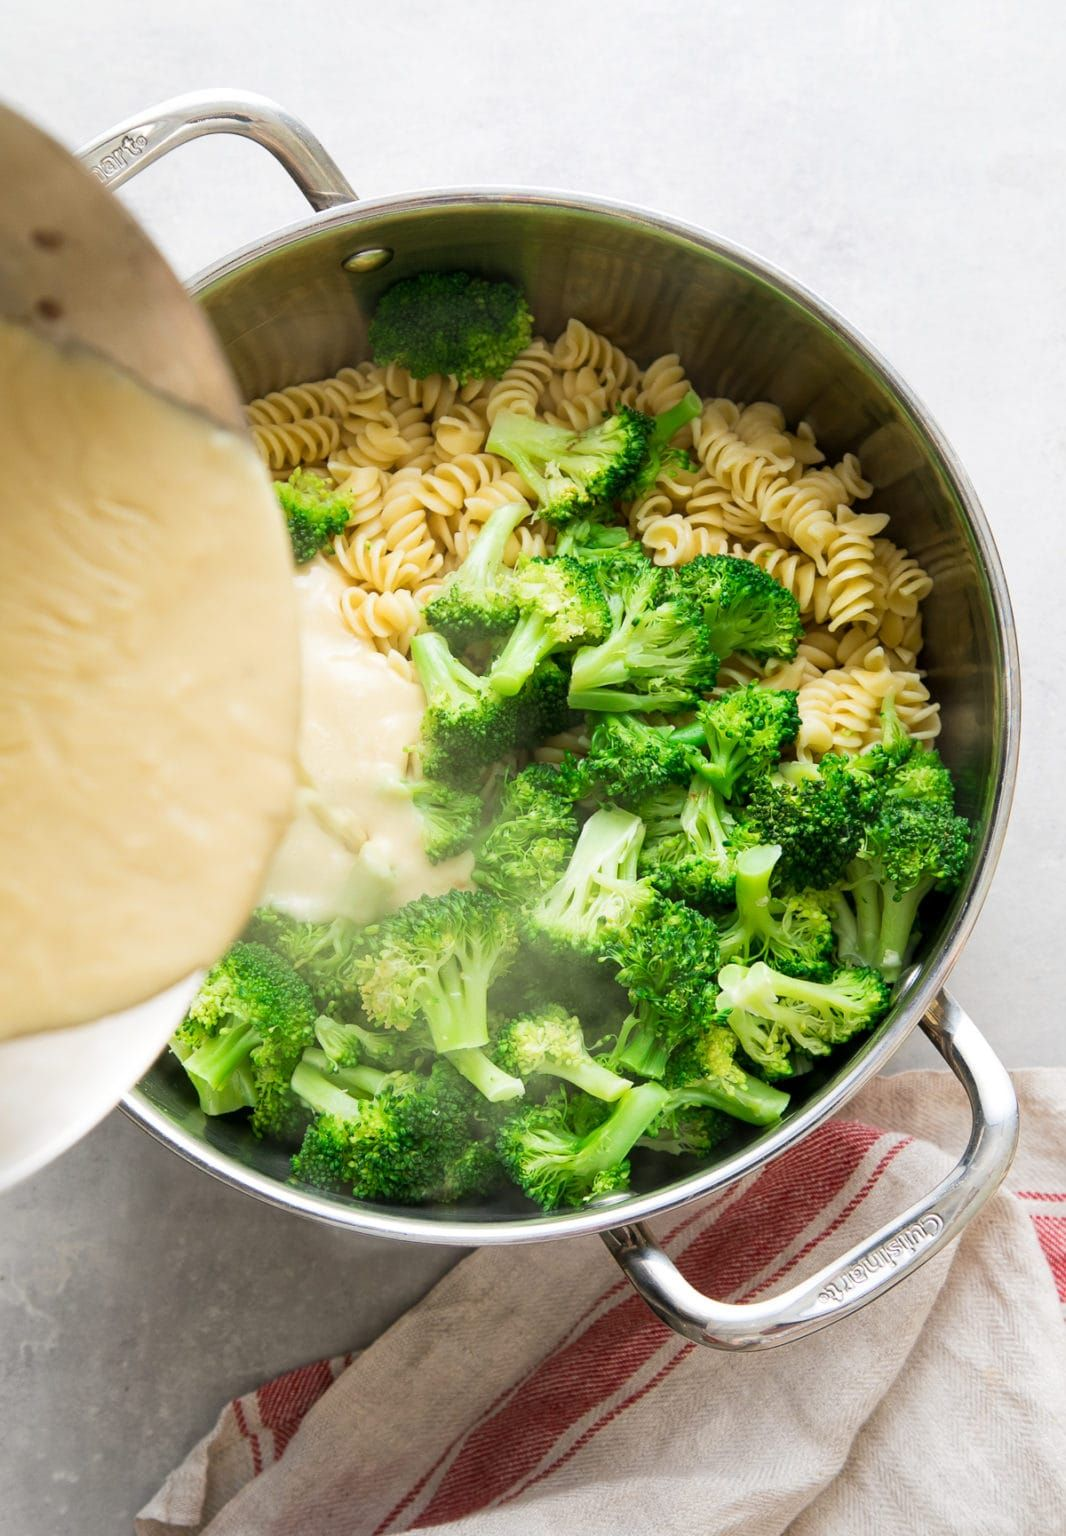 Creamy Broccoli Pasta Is A Pantry Friendly Recipe Featuring A Non Dairy Cream Sauce Made With A Roux Delicious Vegetarian Dinner Easy Pasta Vegan Recipes Easy